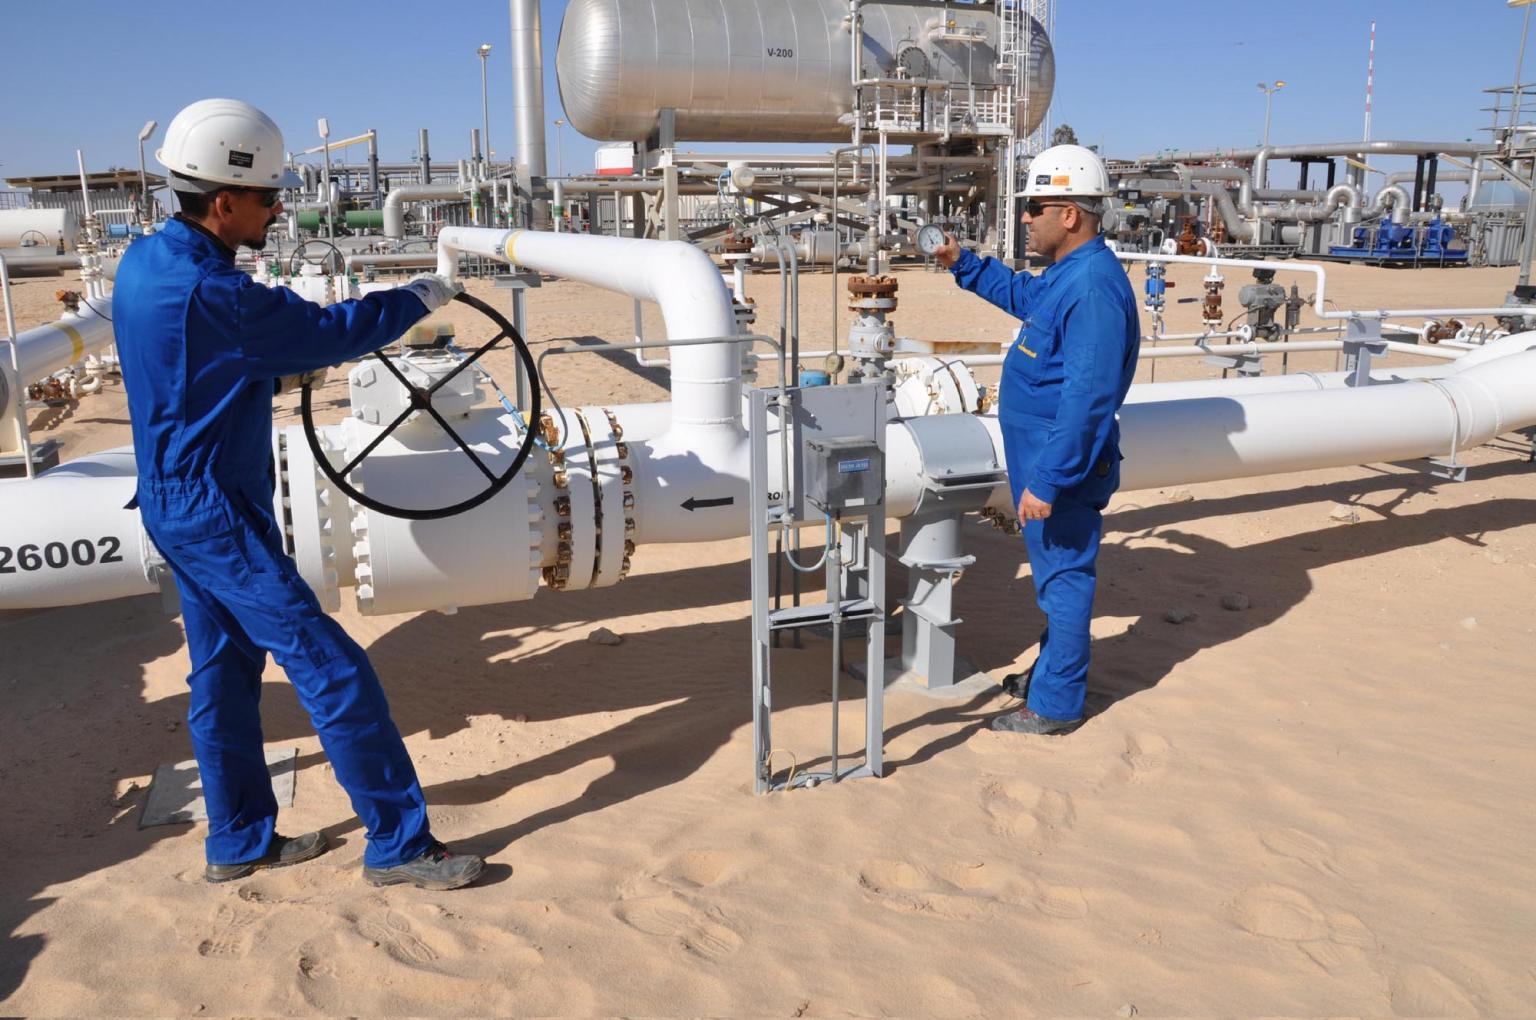 Wintershall employees conducting a routine inspection at the Nakhla site (C97). Source: Wintershall